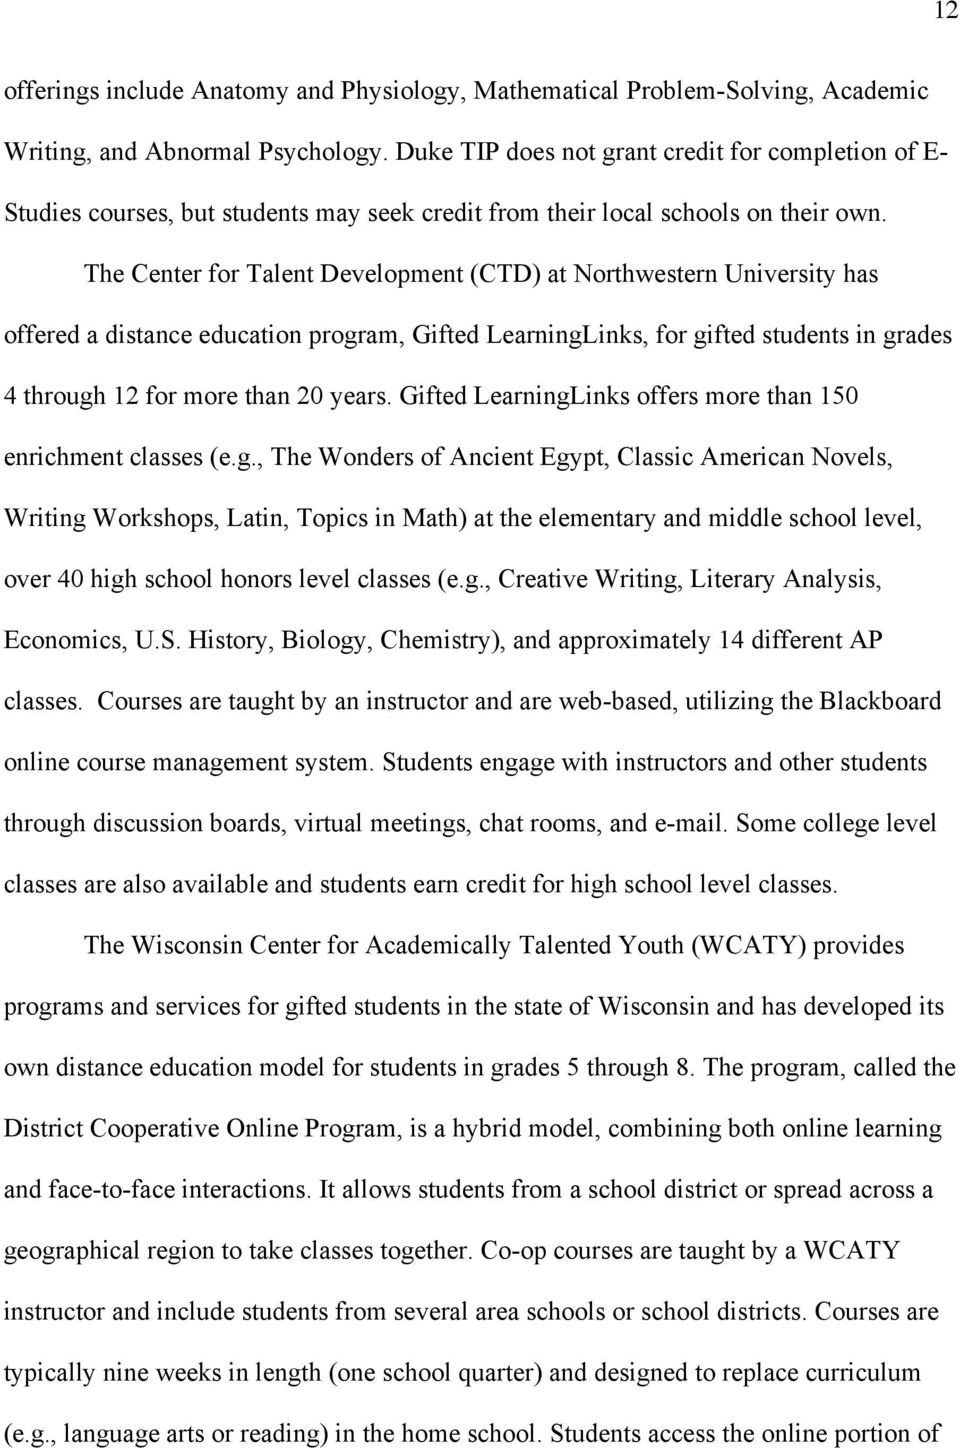 The Center for Talent Development (CTD) at Northwestern University has offered a distance education program, Gifted LearningLinks, for gifted students in grades 4 through 12 for more than 20 years.